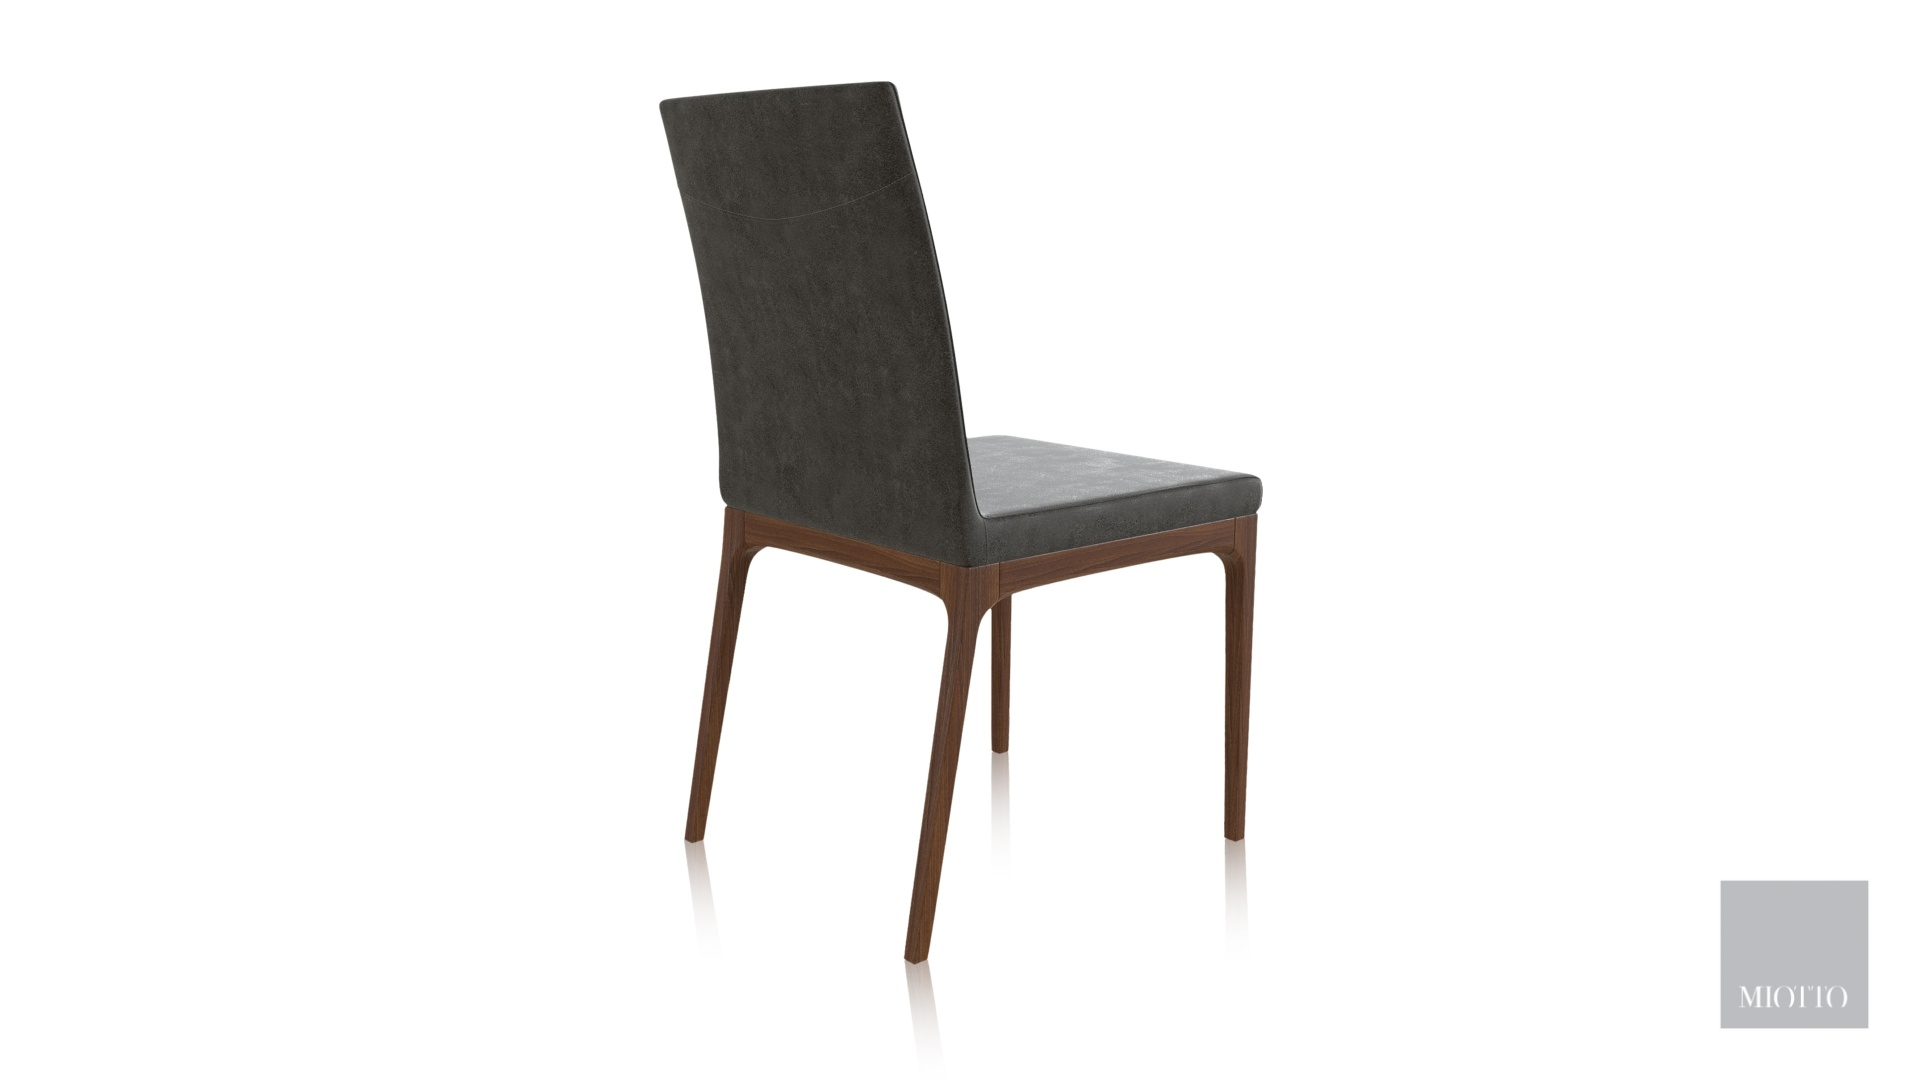 miotto_lanzo LB DC dark grey back T miotto dining chair furniture